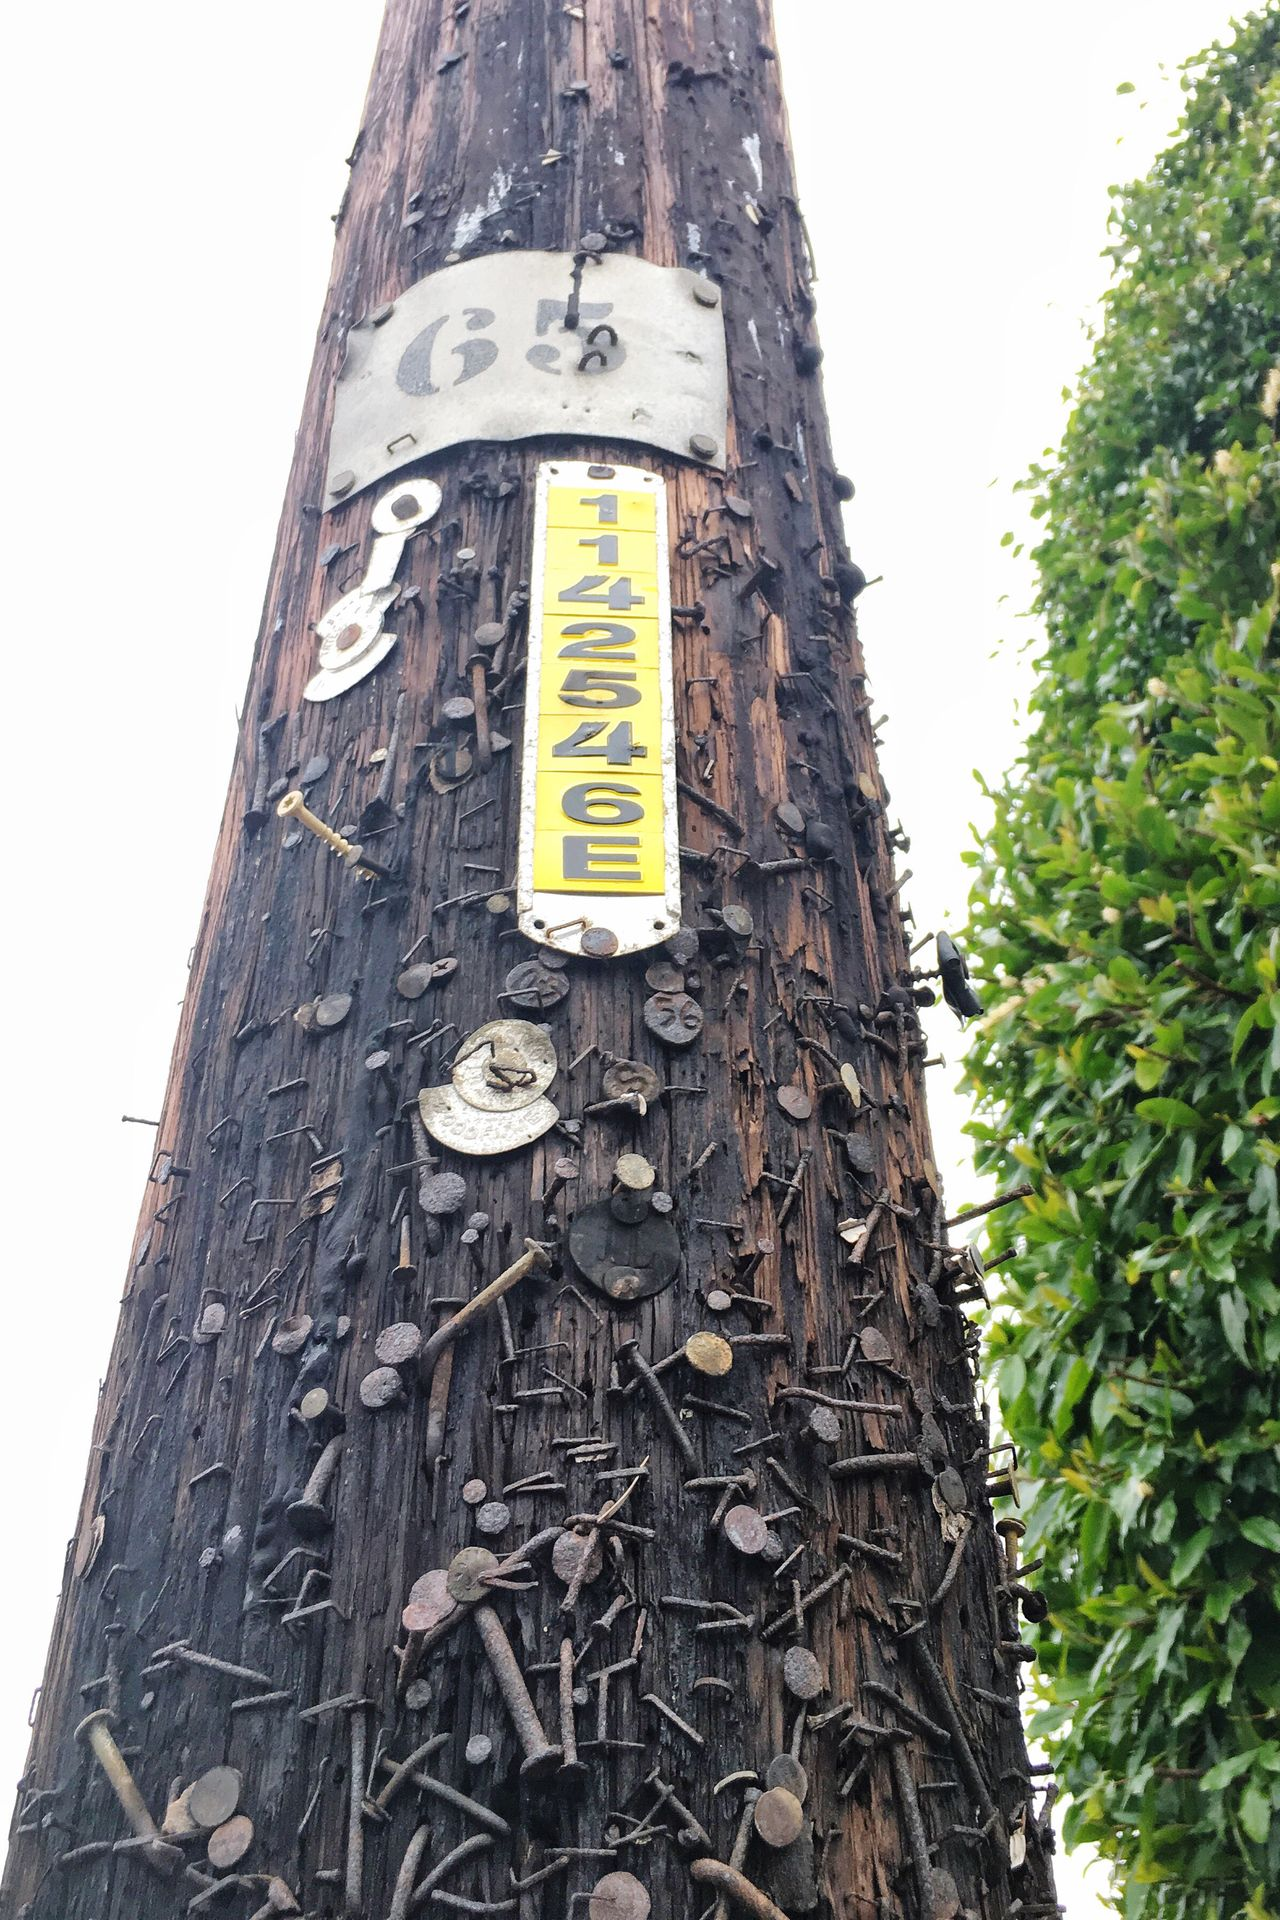 Tagged Telephone Pole Communication Nature Outdoors Low Angle View Text Close-up Sky Rusty Wood Tags Nails Traces Pins